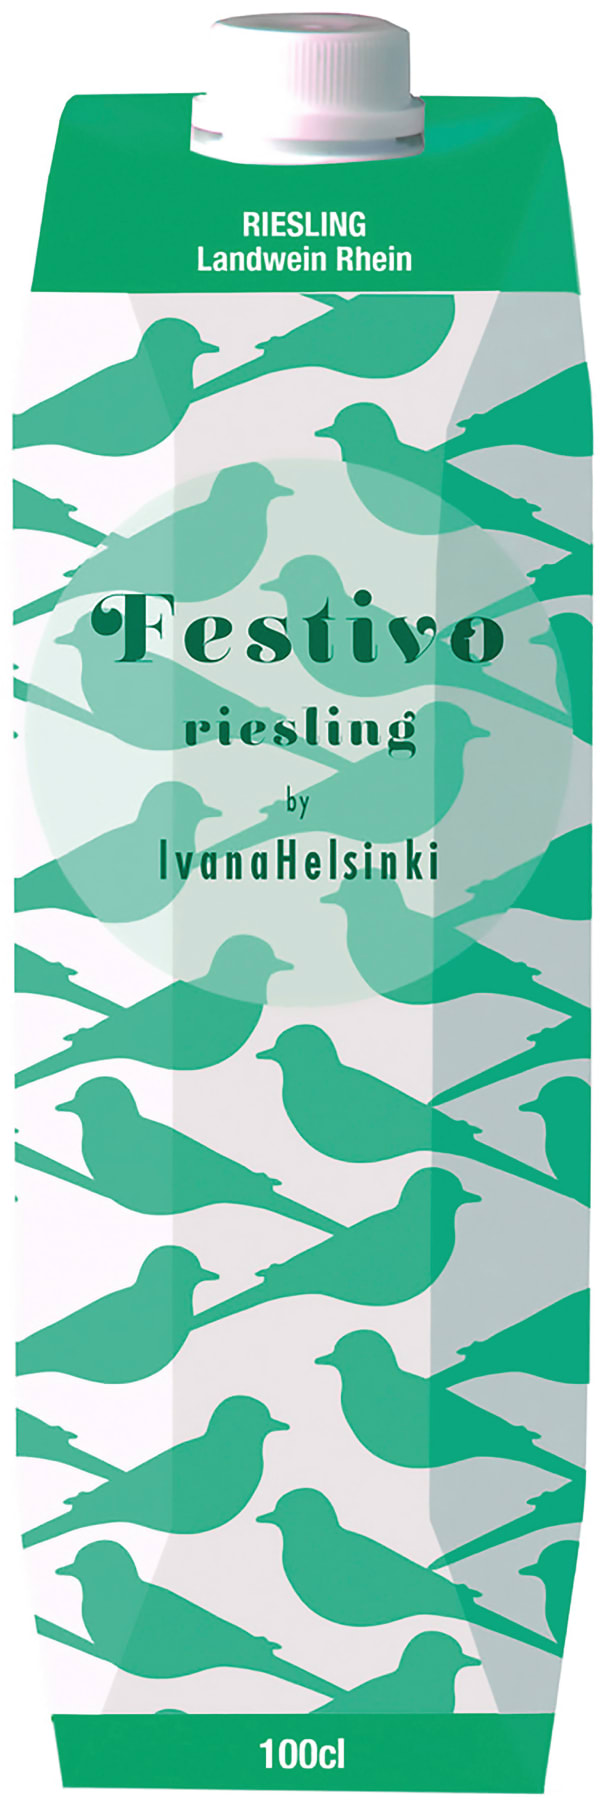 Festivo Riesling carton package